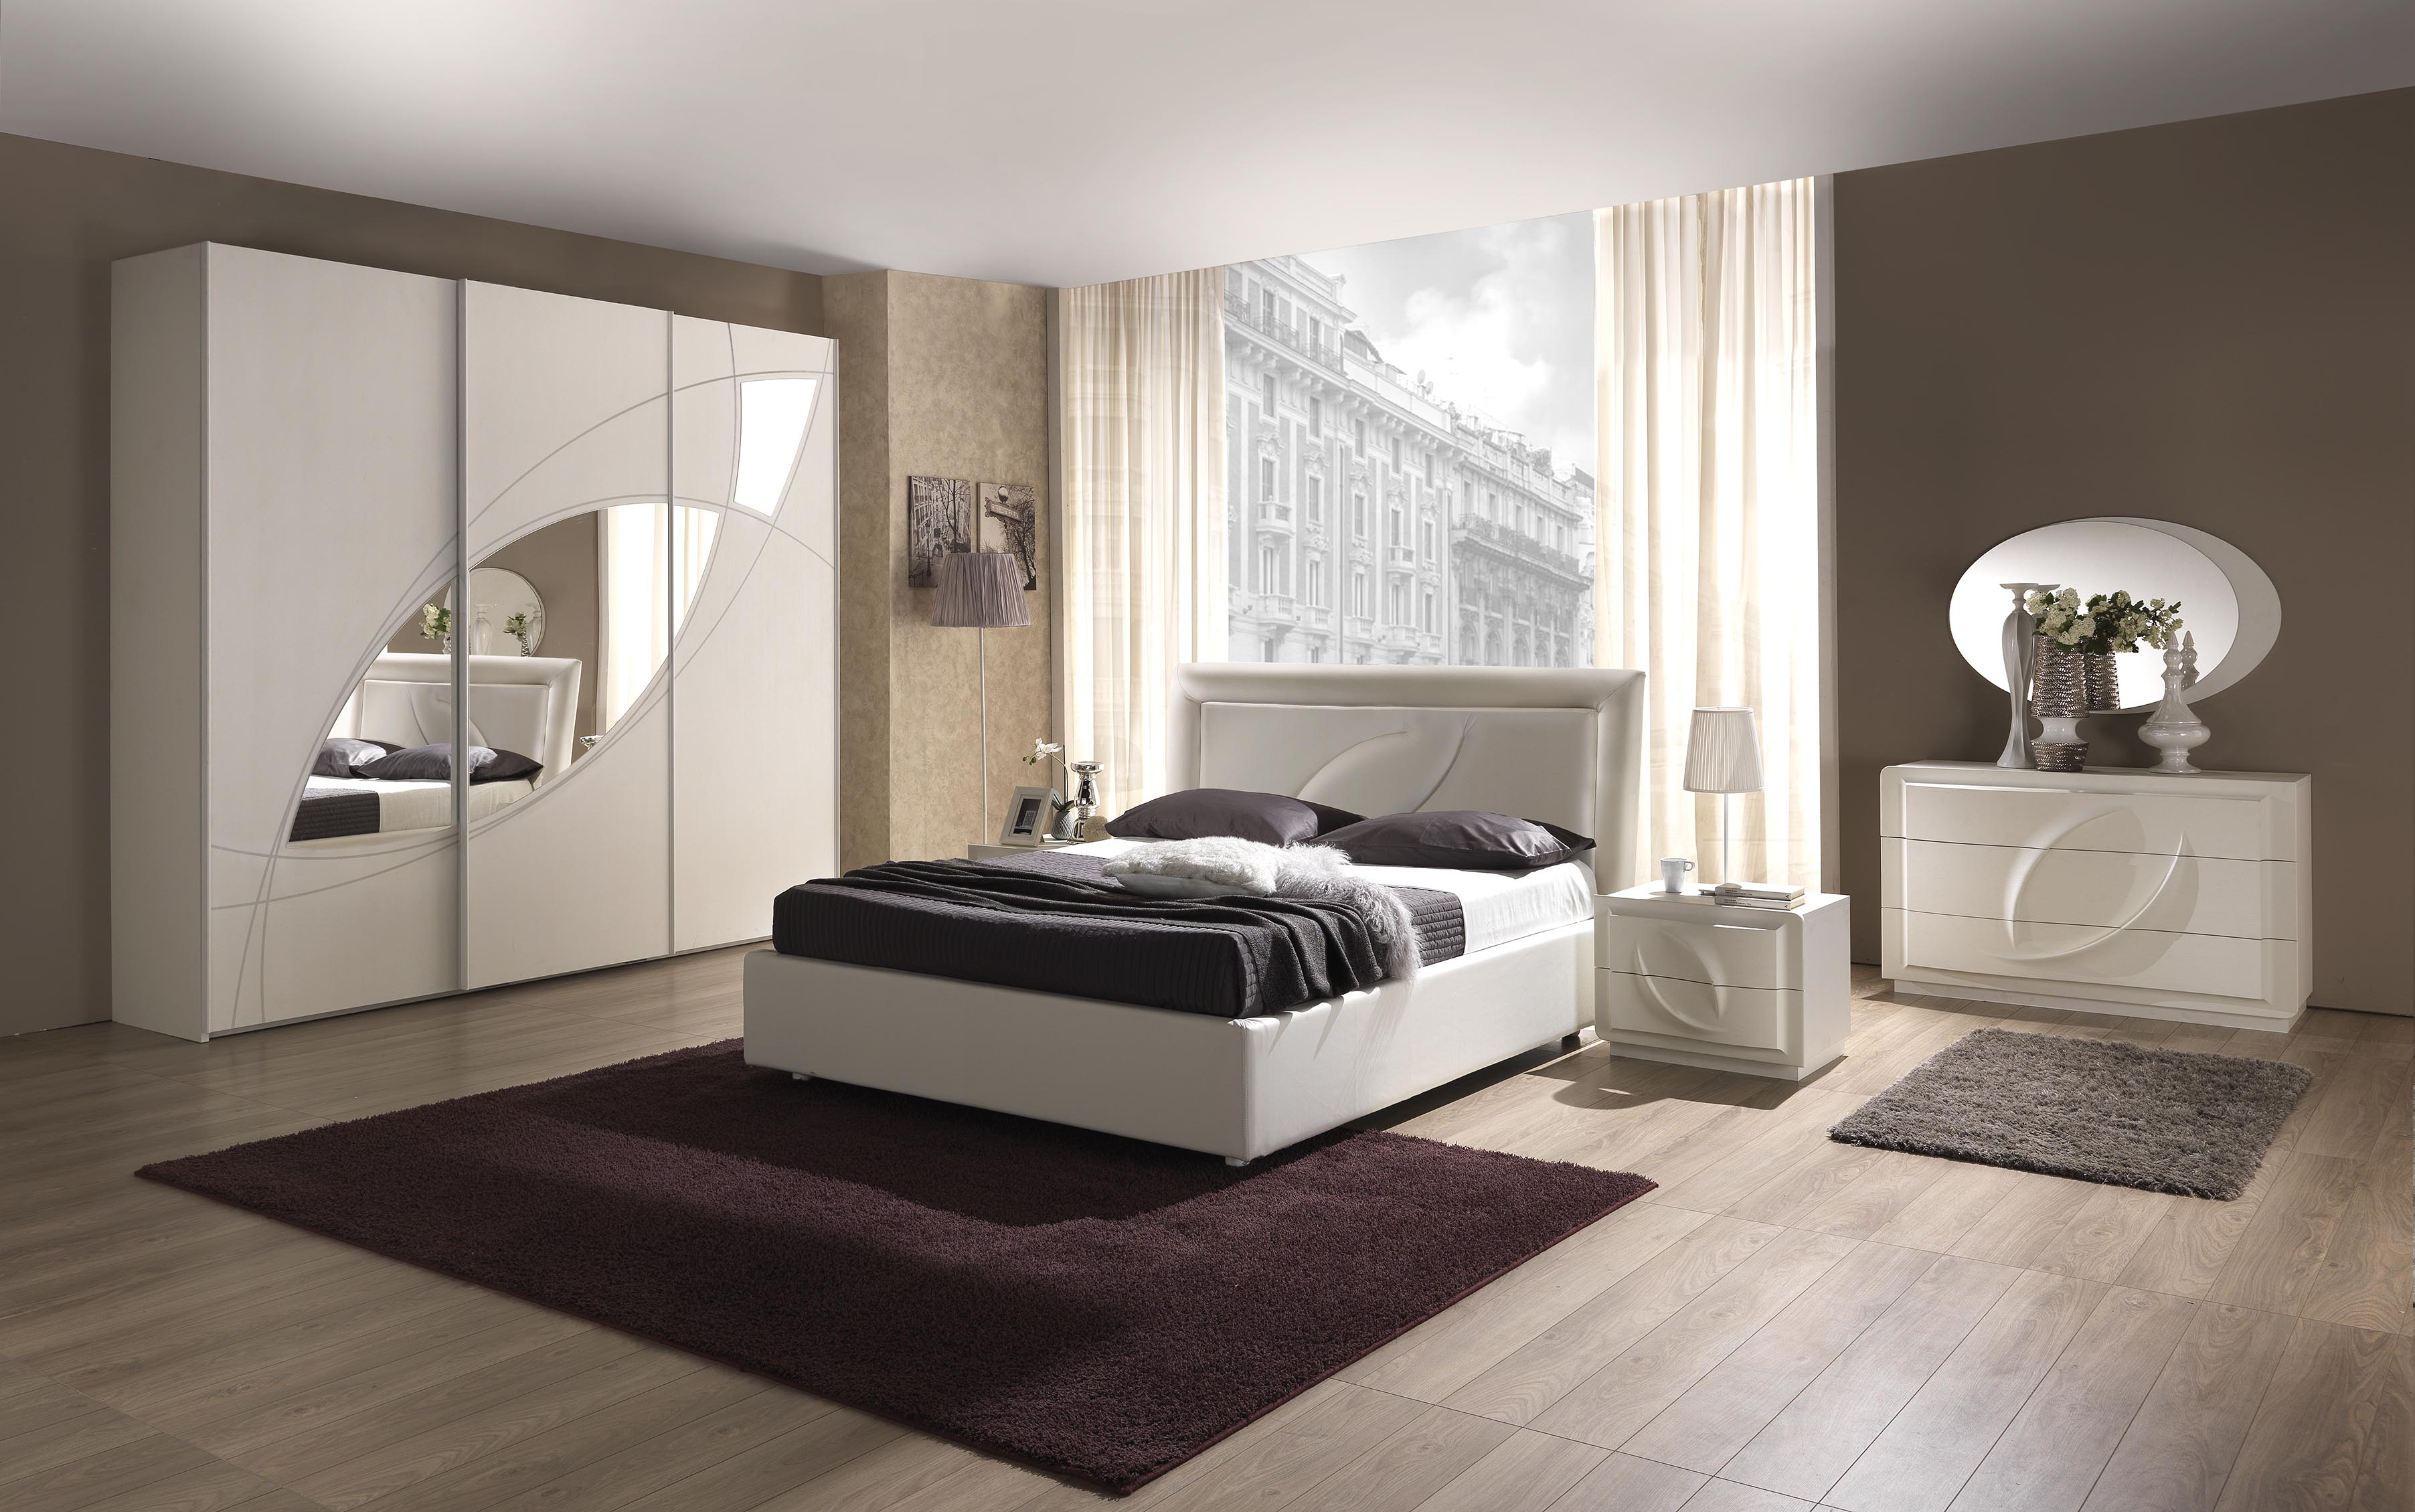 bett 160x200 cm trevia in weiss stilvoll elegante m bel xp. Black Bedroom Furniture Sets. Home Design Ideas